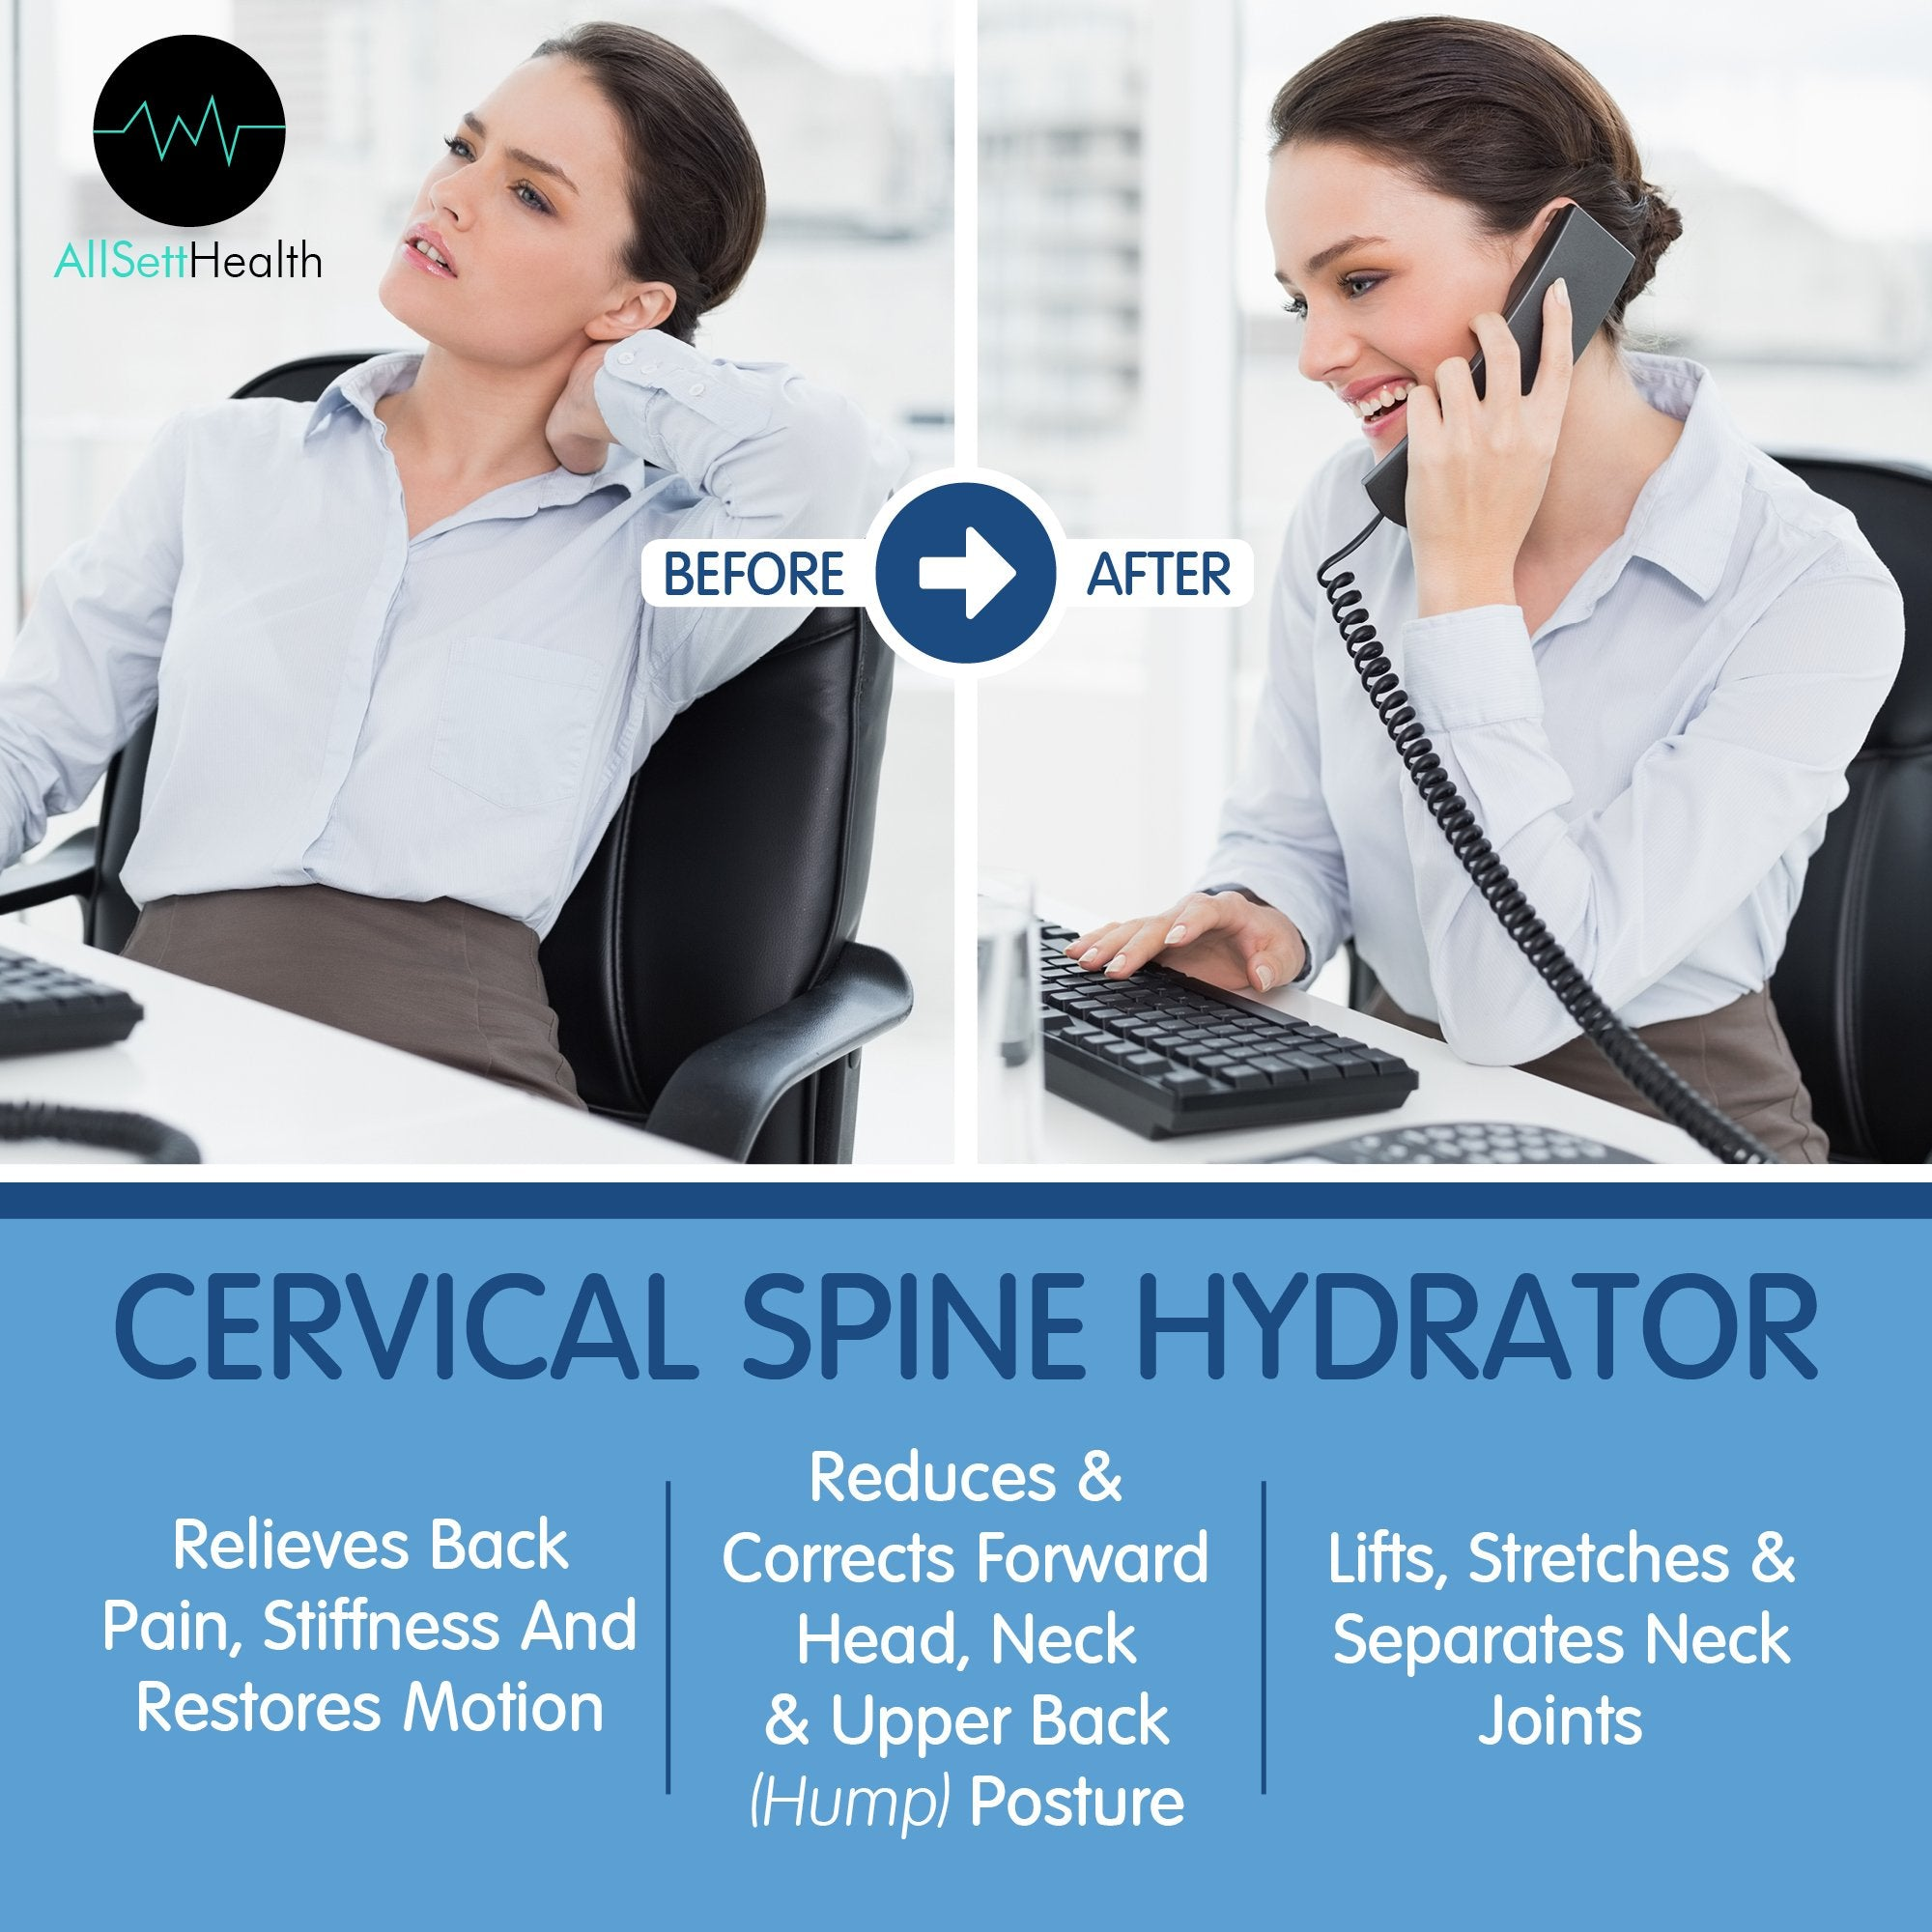 Posture Neck Relief Cervical Spine Hydrator Pump, Exercising Spine Posture & Curve Corrector for Neck & Spine Relief